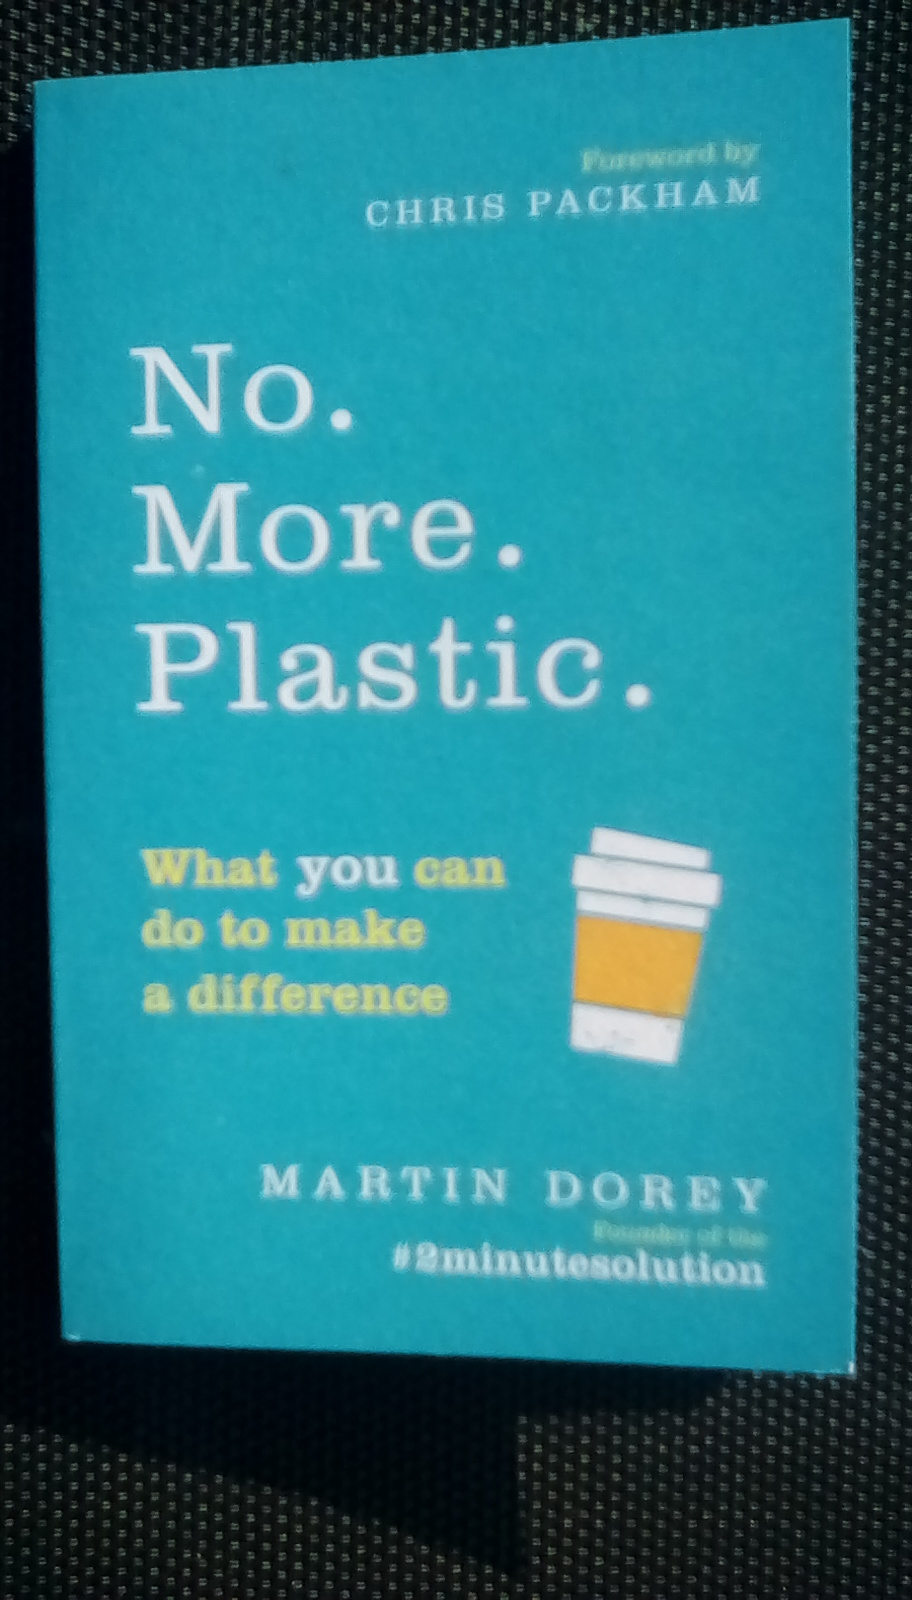 No More Plastic – what you can do to make a difference By Martin Dorey, Chris Packham (foreword) – A Review